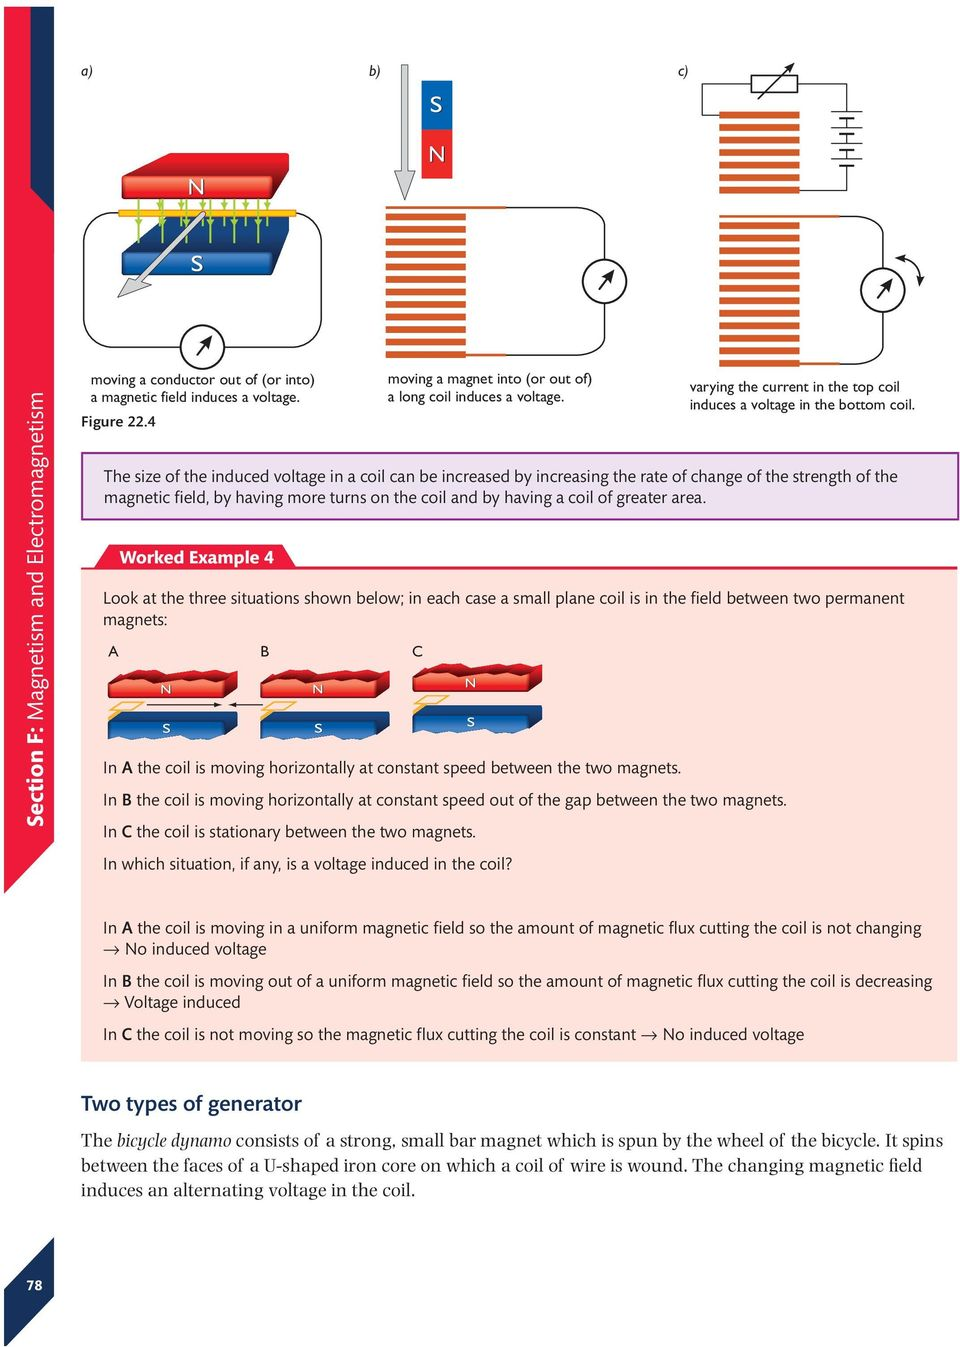 The size of the induced voltage in a coil can be increased by increasing the rate of change of the strength of the magnetic field, by having more turns on the coil and by having a coil of greater